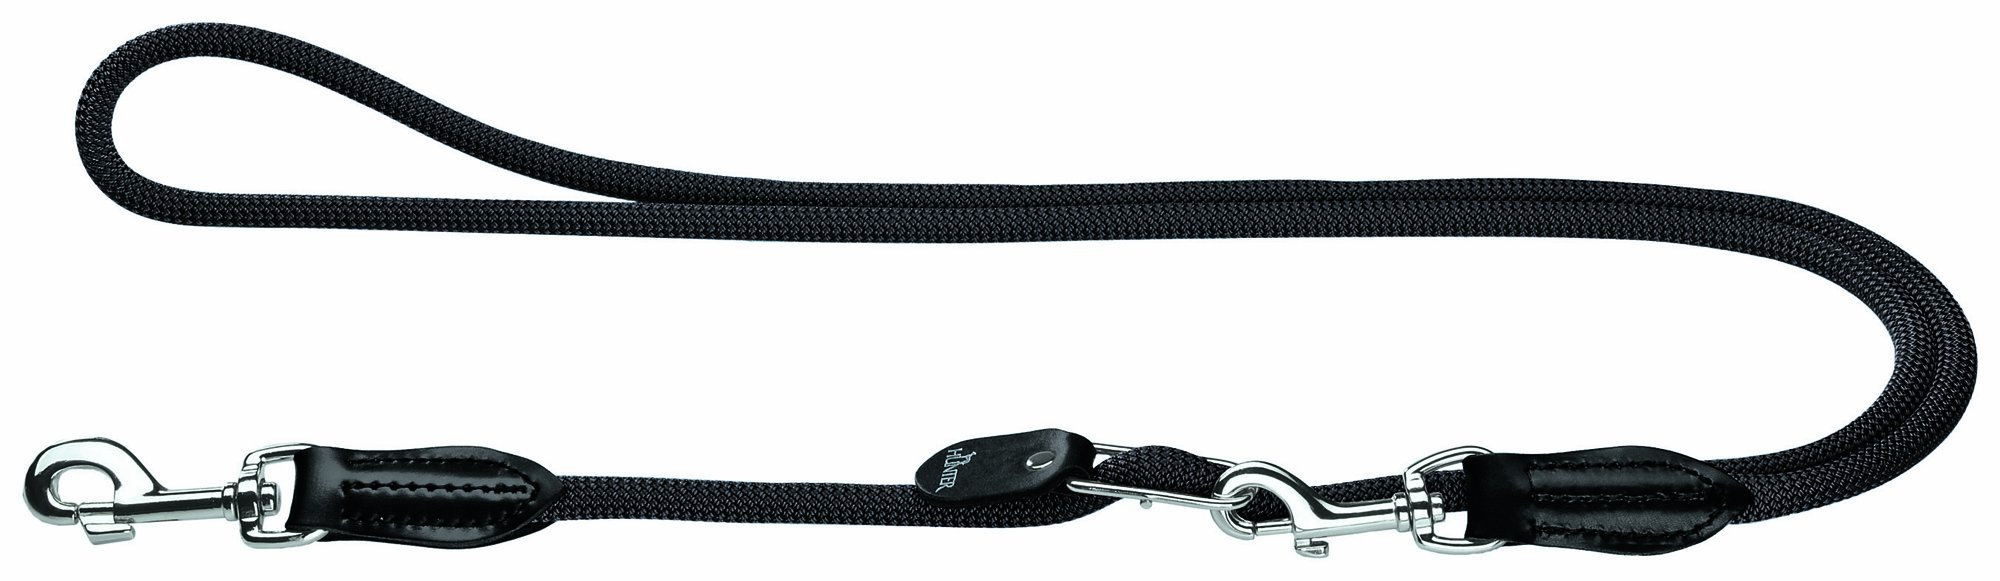 Hunter HT39117 Freestyle Rope Adjustable Leash, One Size by Hunter